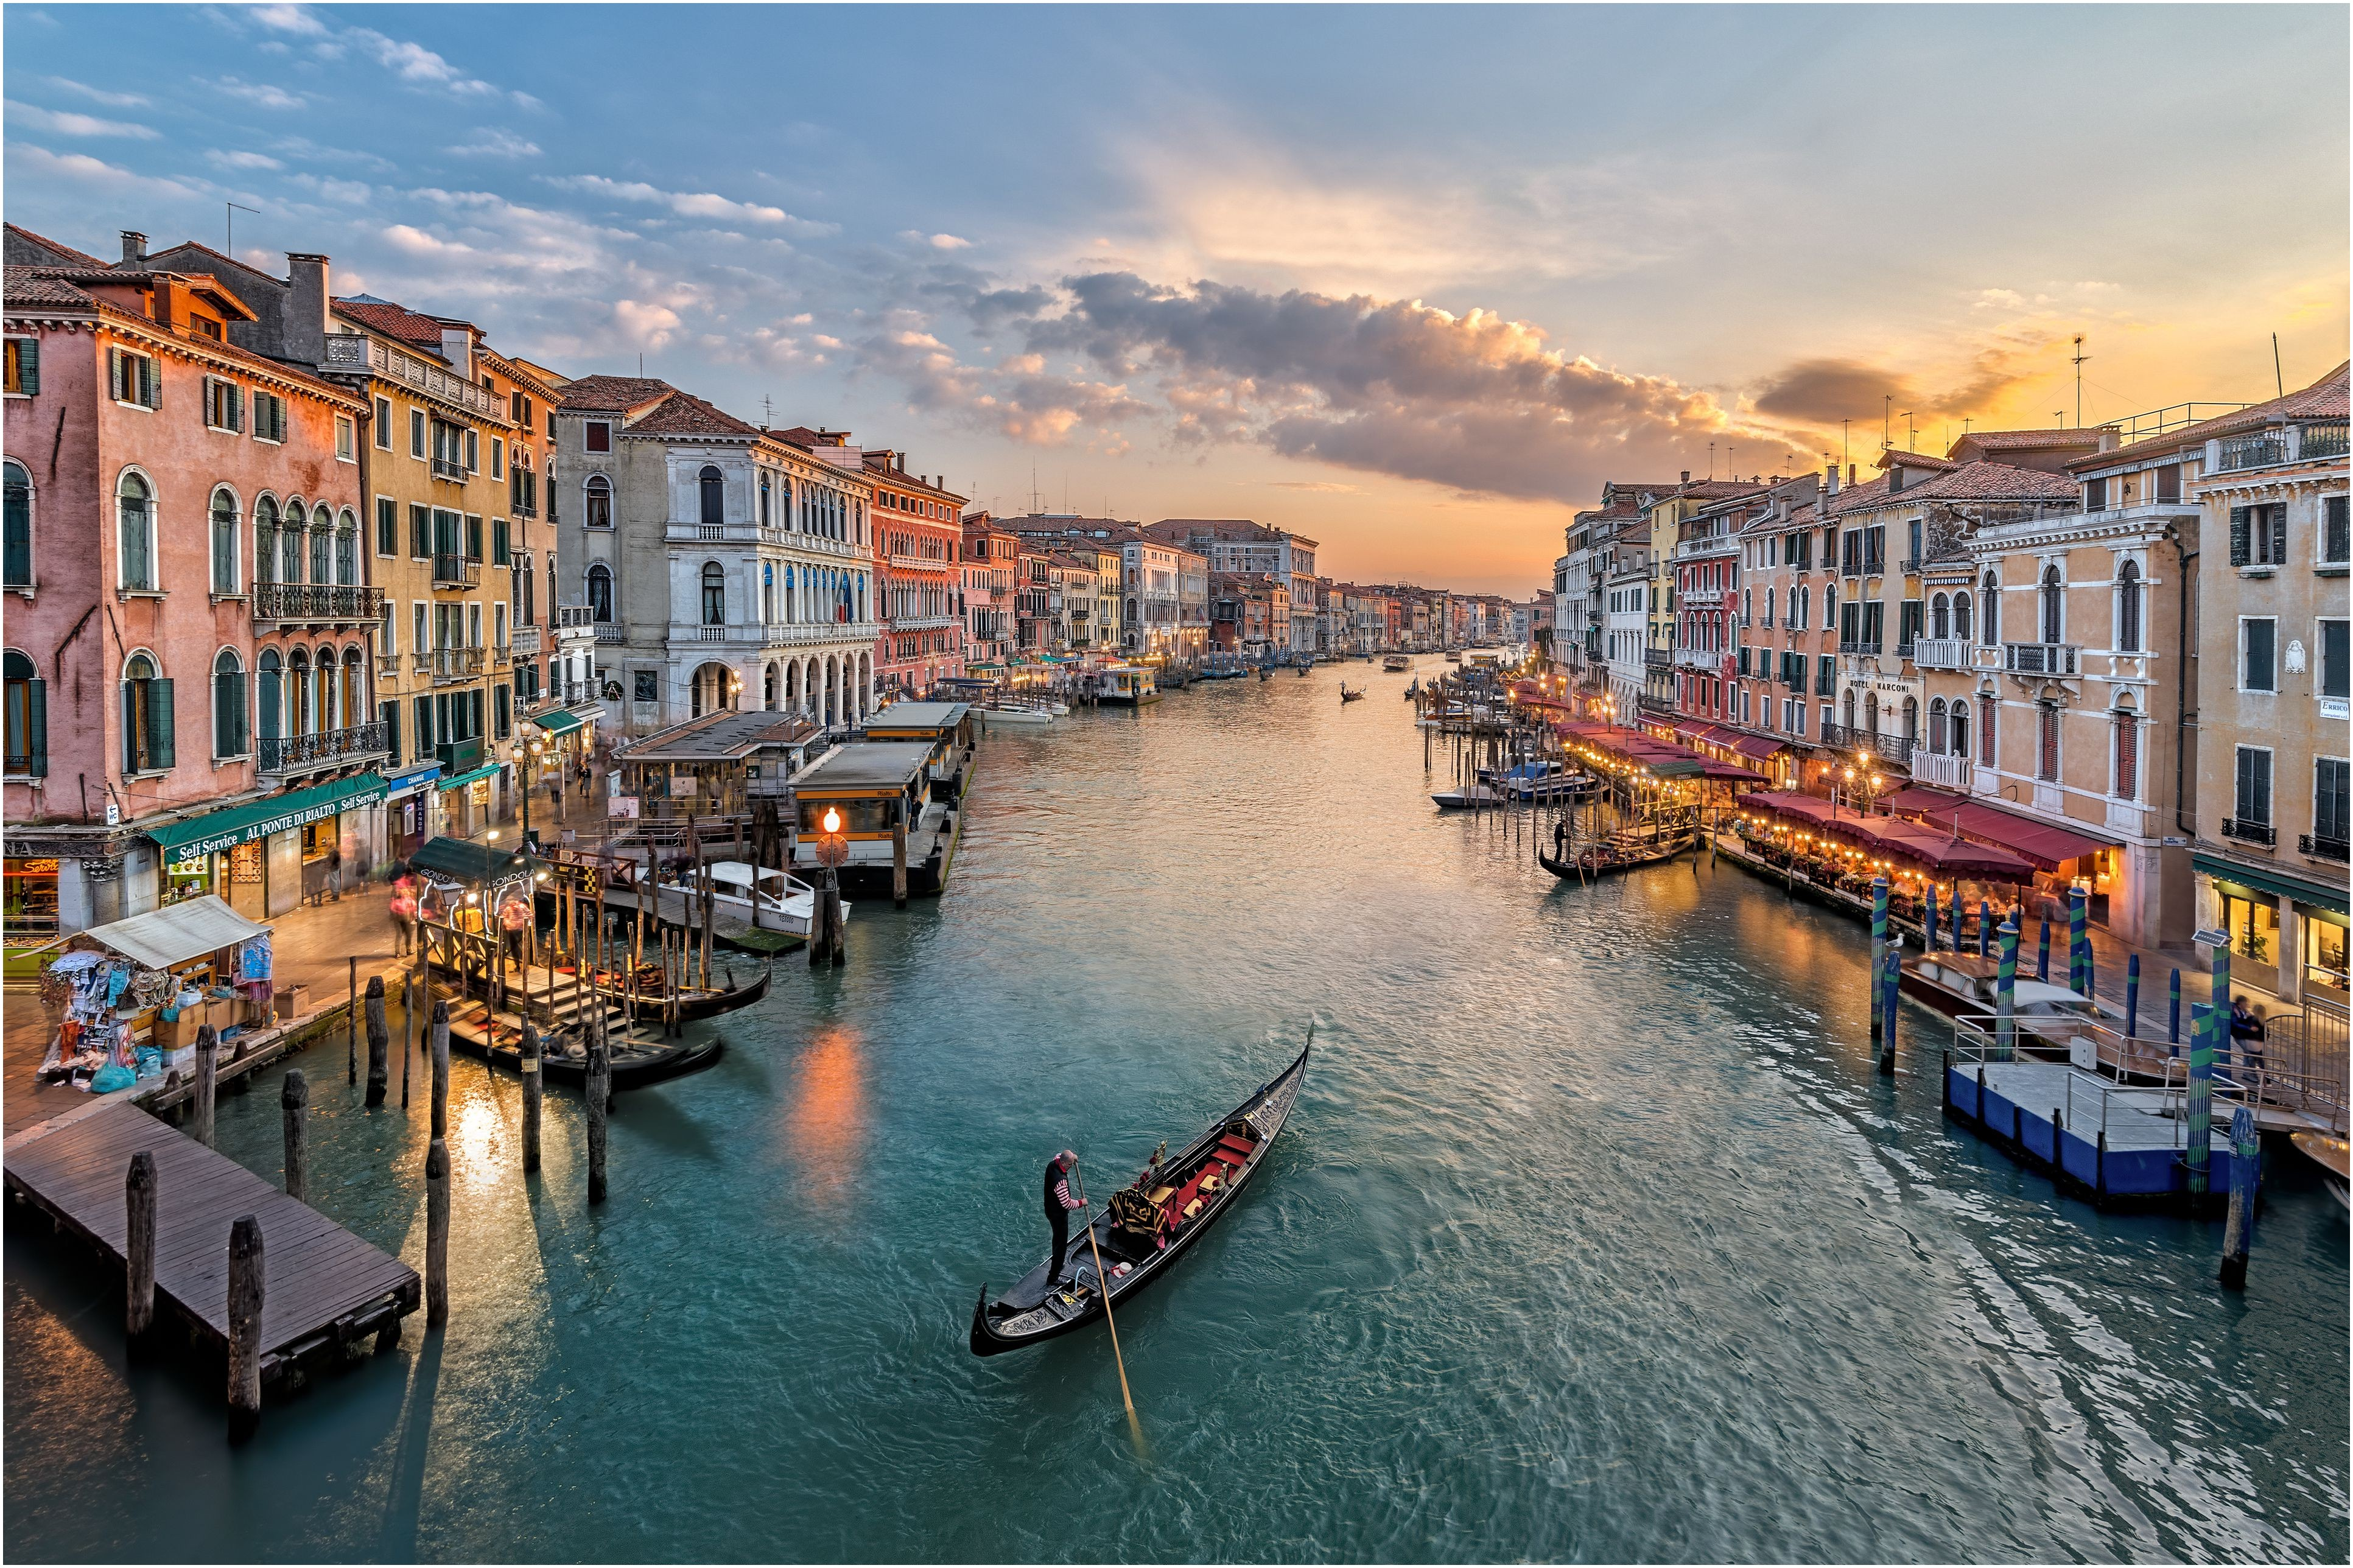 italy venice elevated view of canal in city b396e5a0011c9ef3e